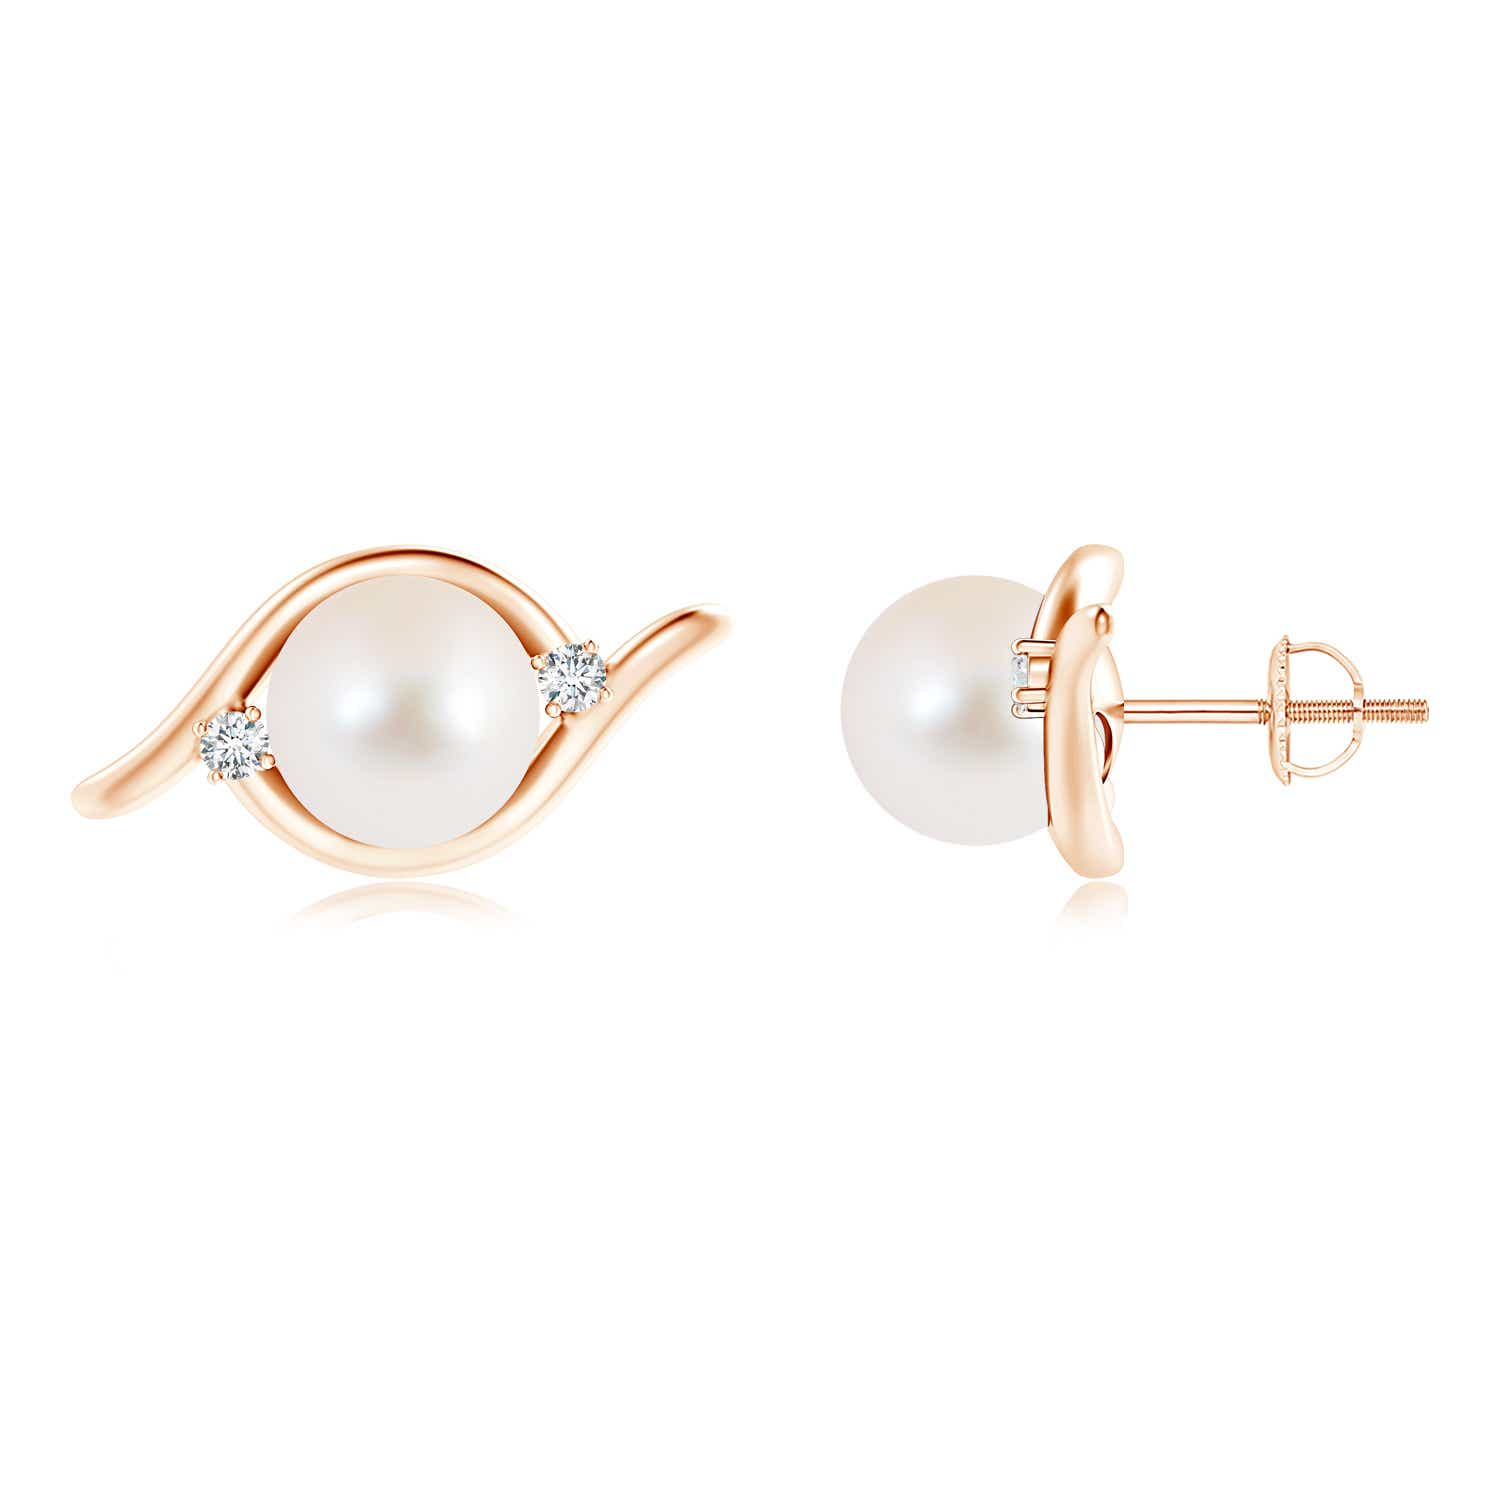 9mm-Freshwater-Cultured-Pearl-Diamond-Stud-Earrings-Silver-14K-Gold